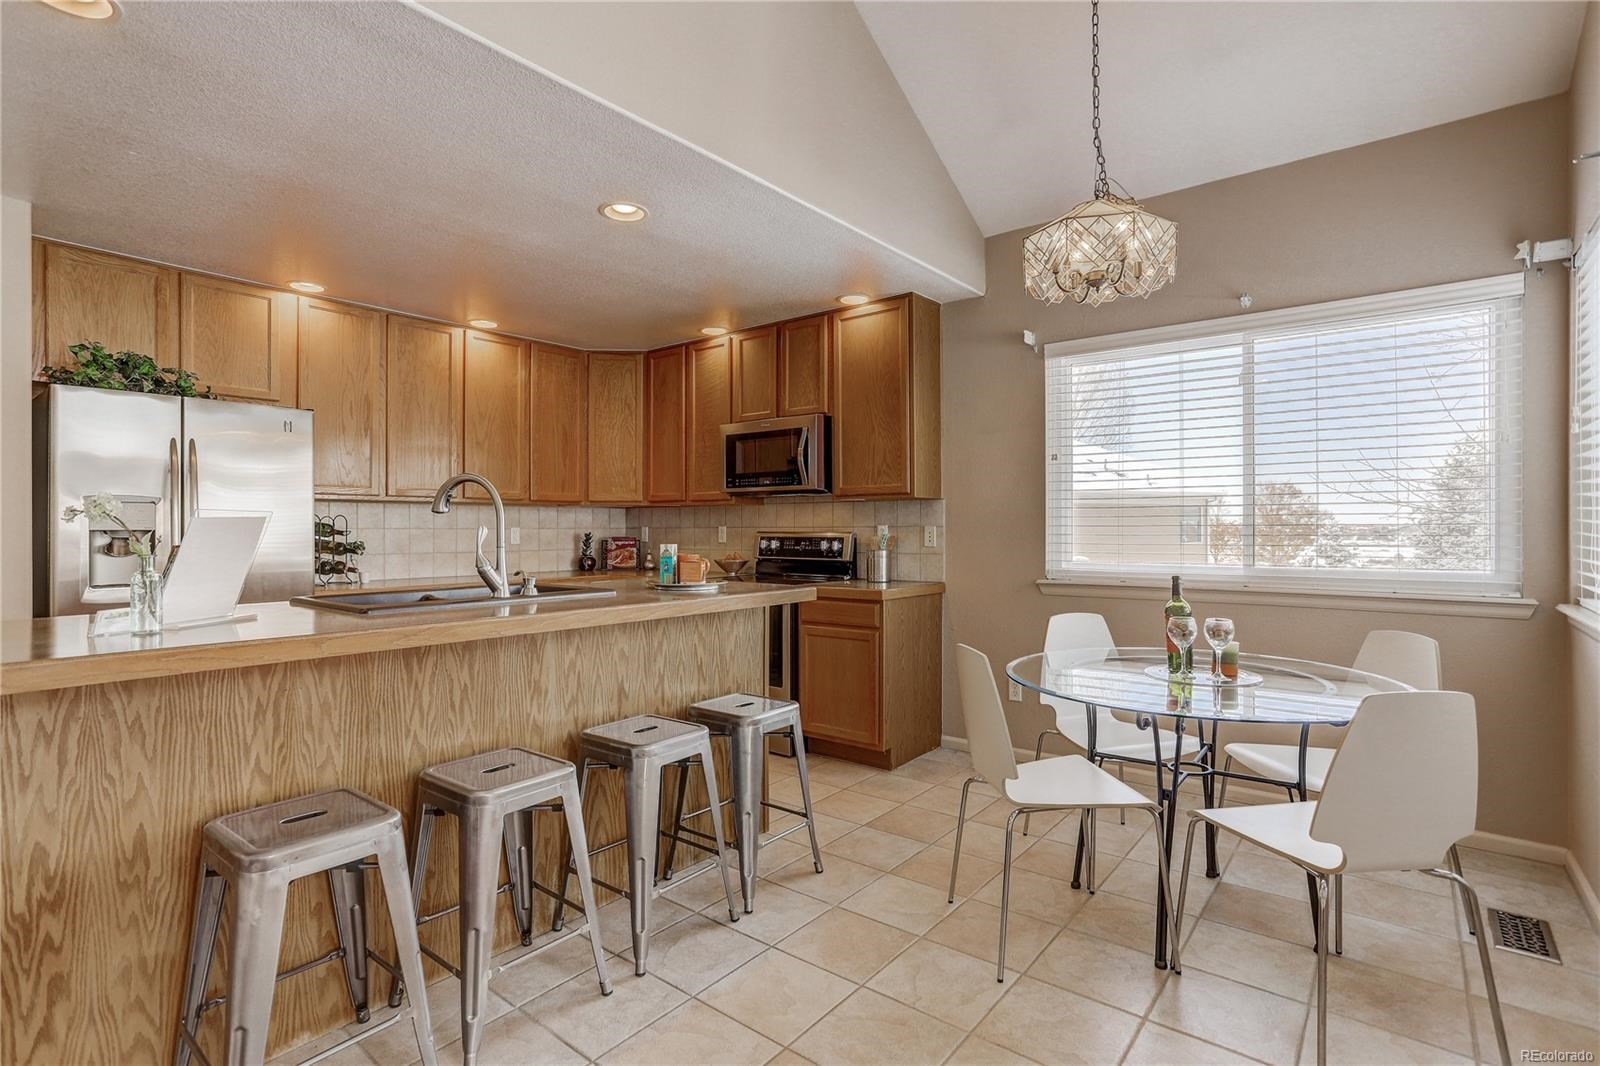 MLS# 8327774 - 12 - 806 W 127th Court, Westminster, CO 80234